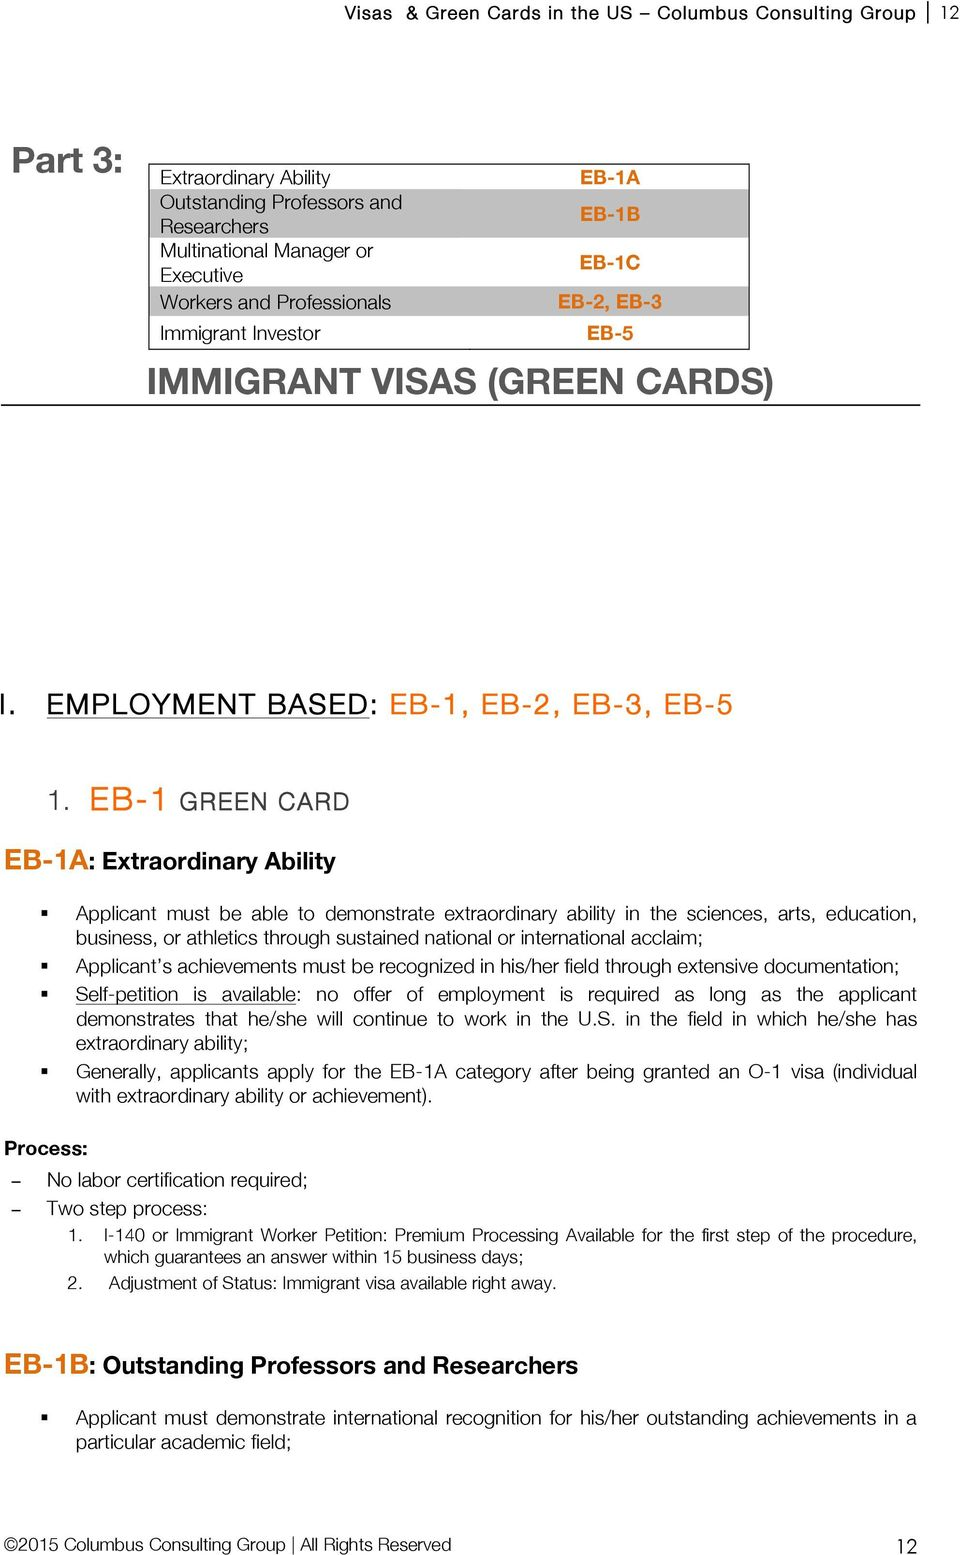 NON-IMMIGRANT VISAS AND GREEN CARDS TO WORK AND LIVE IN THE